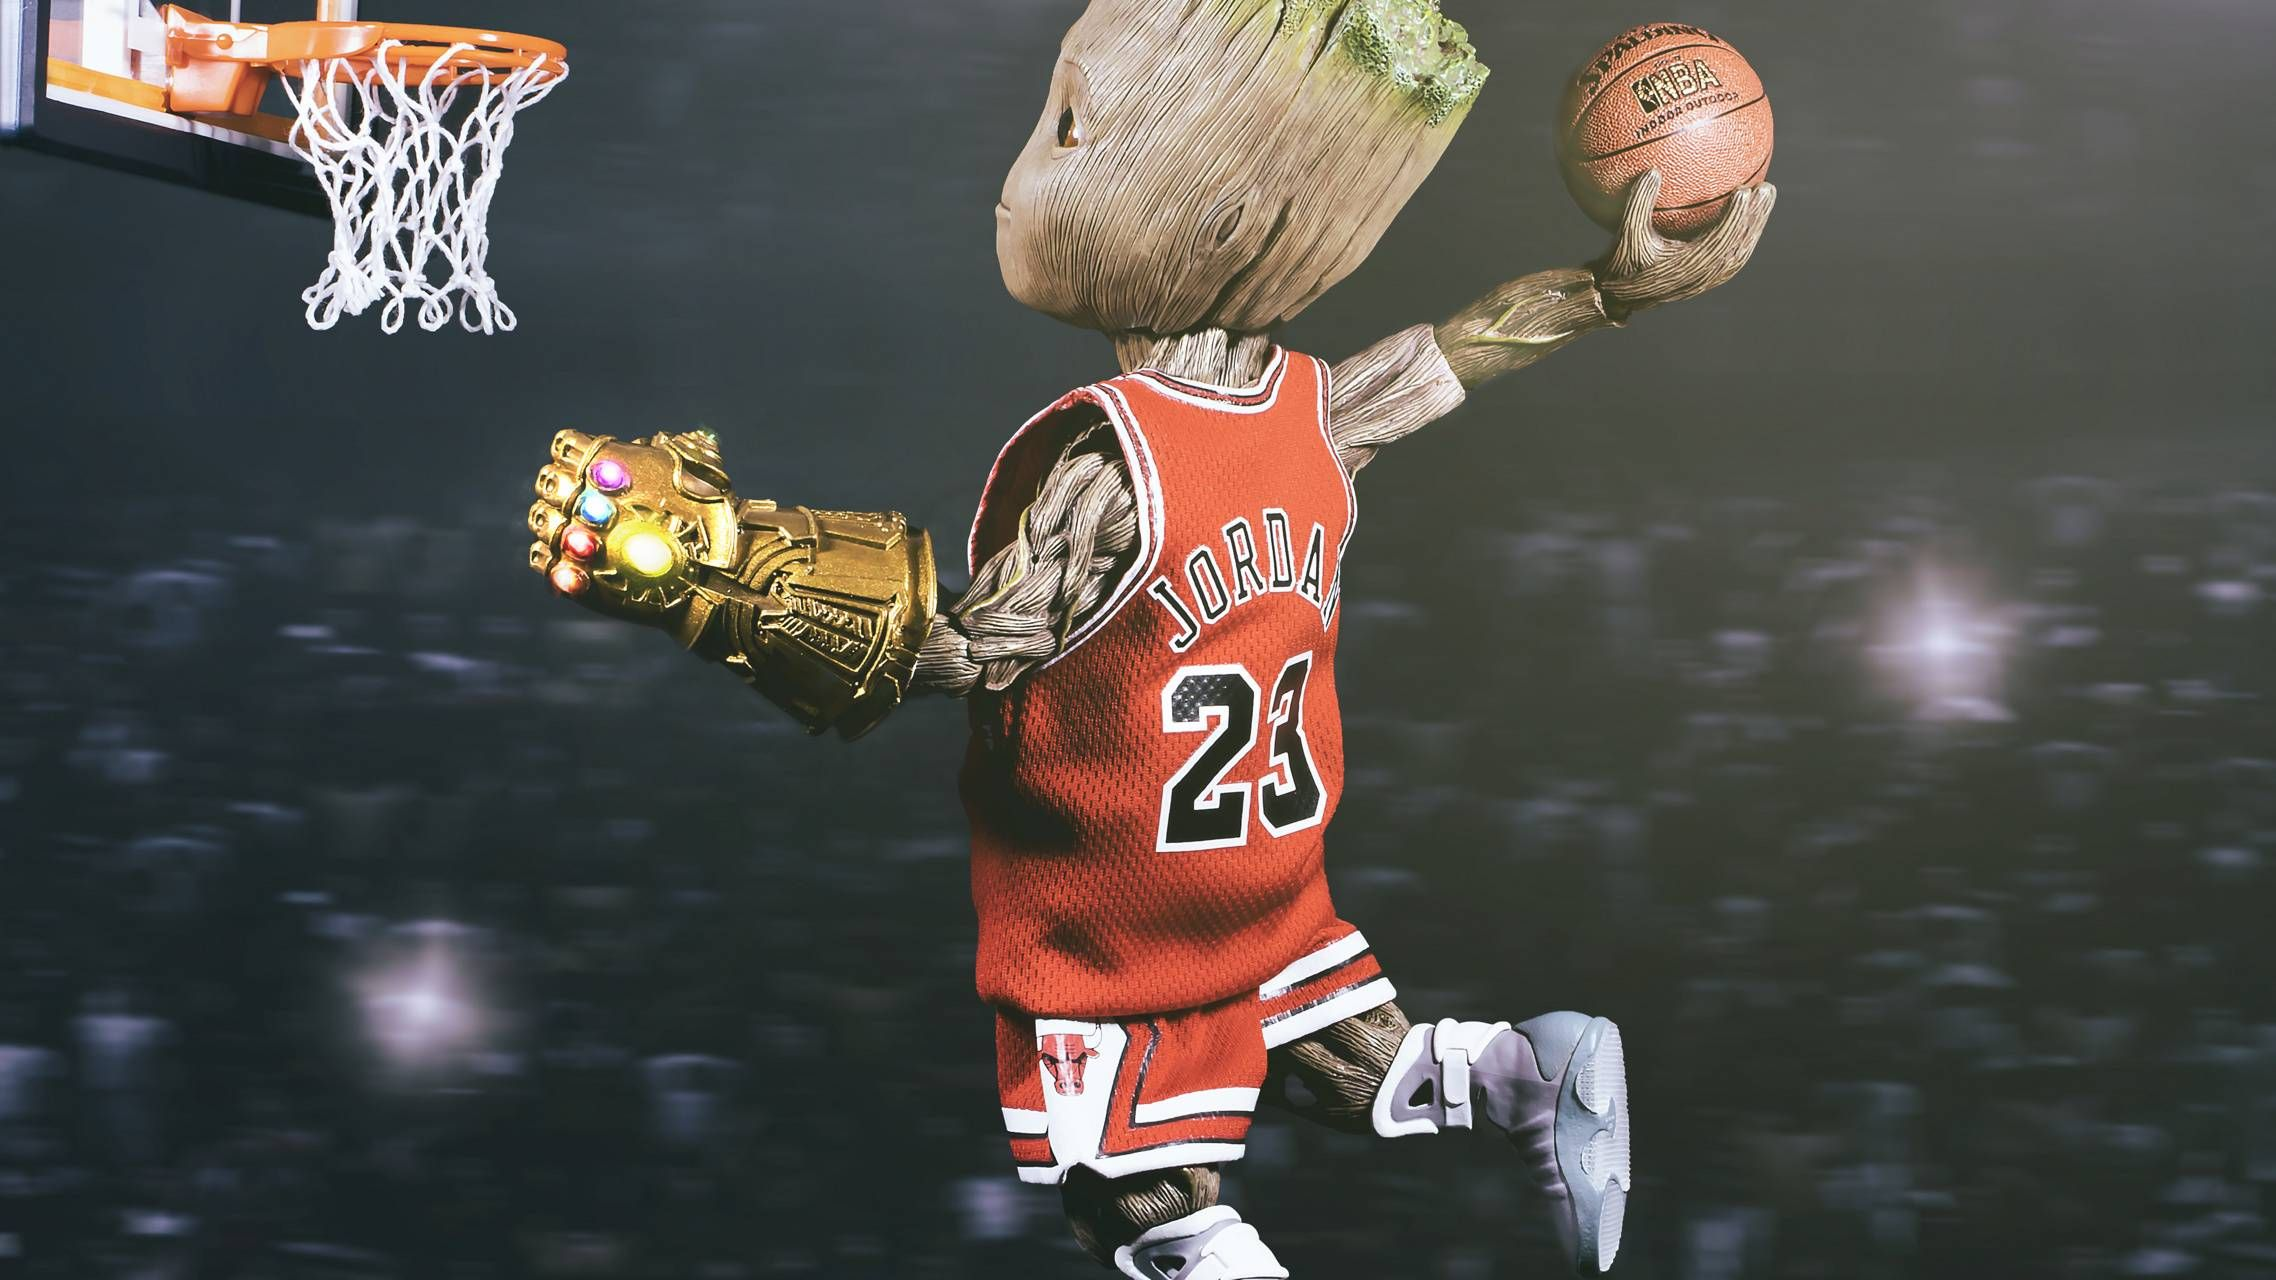 Download Groot Basketball 5k wallpaper by vivialivegsm